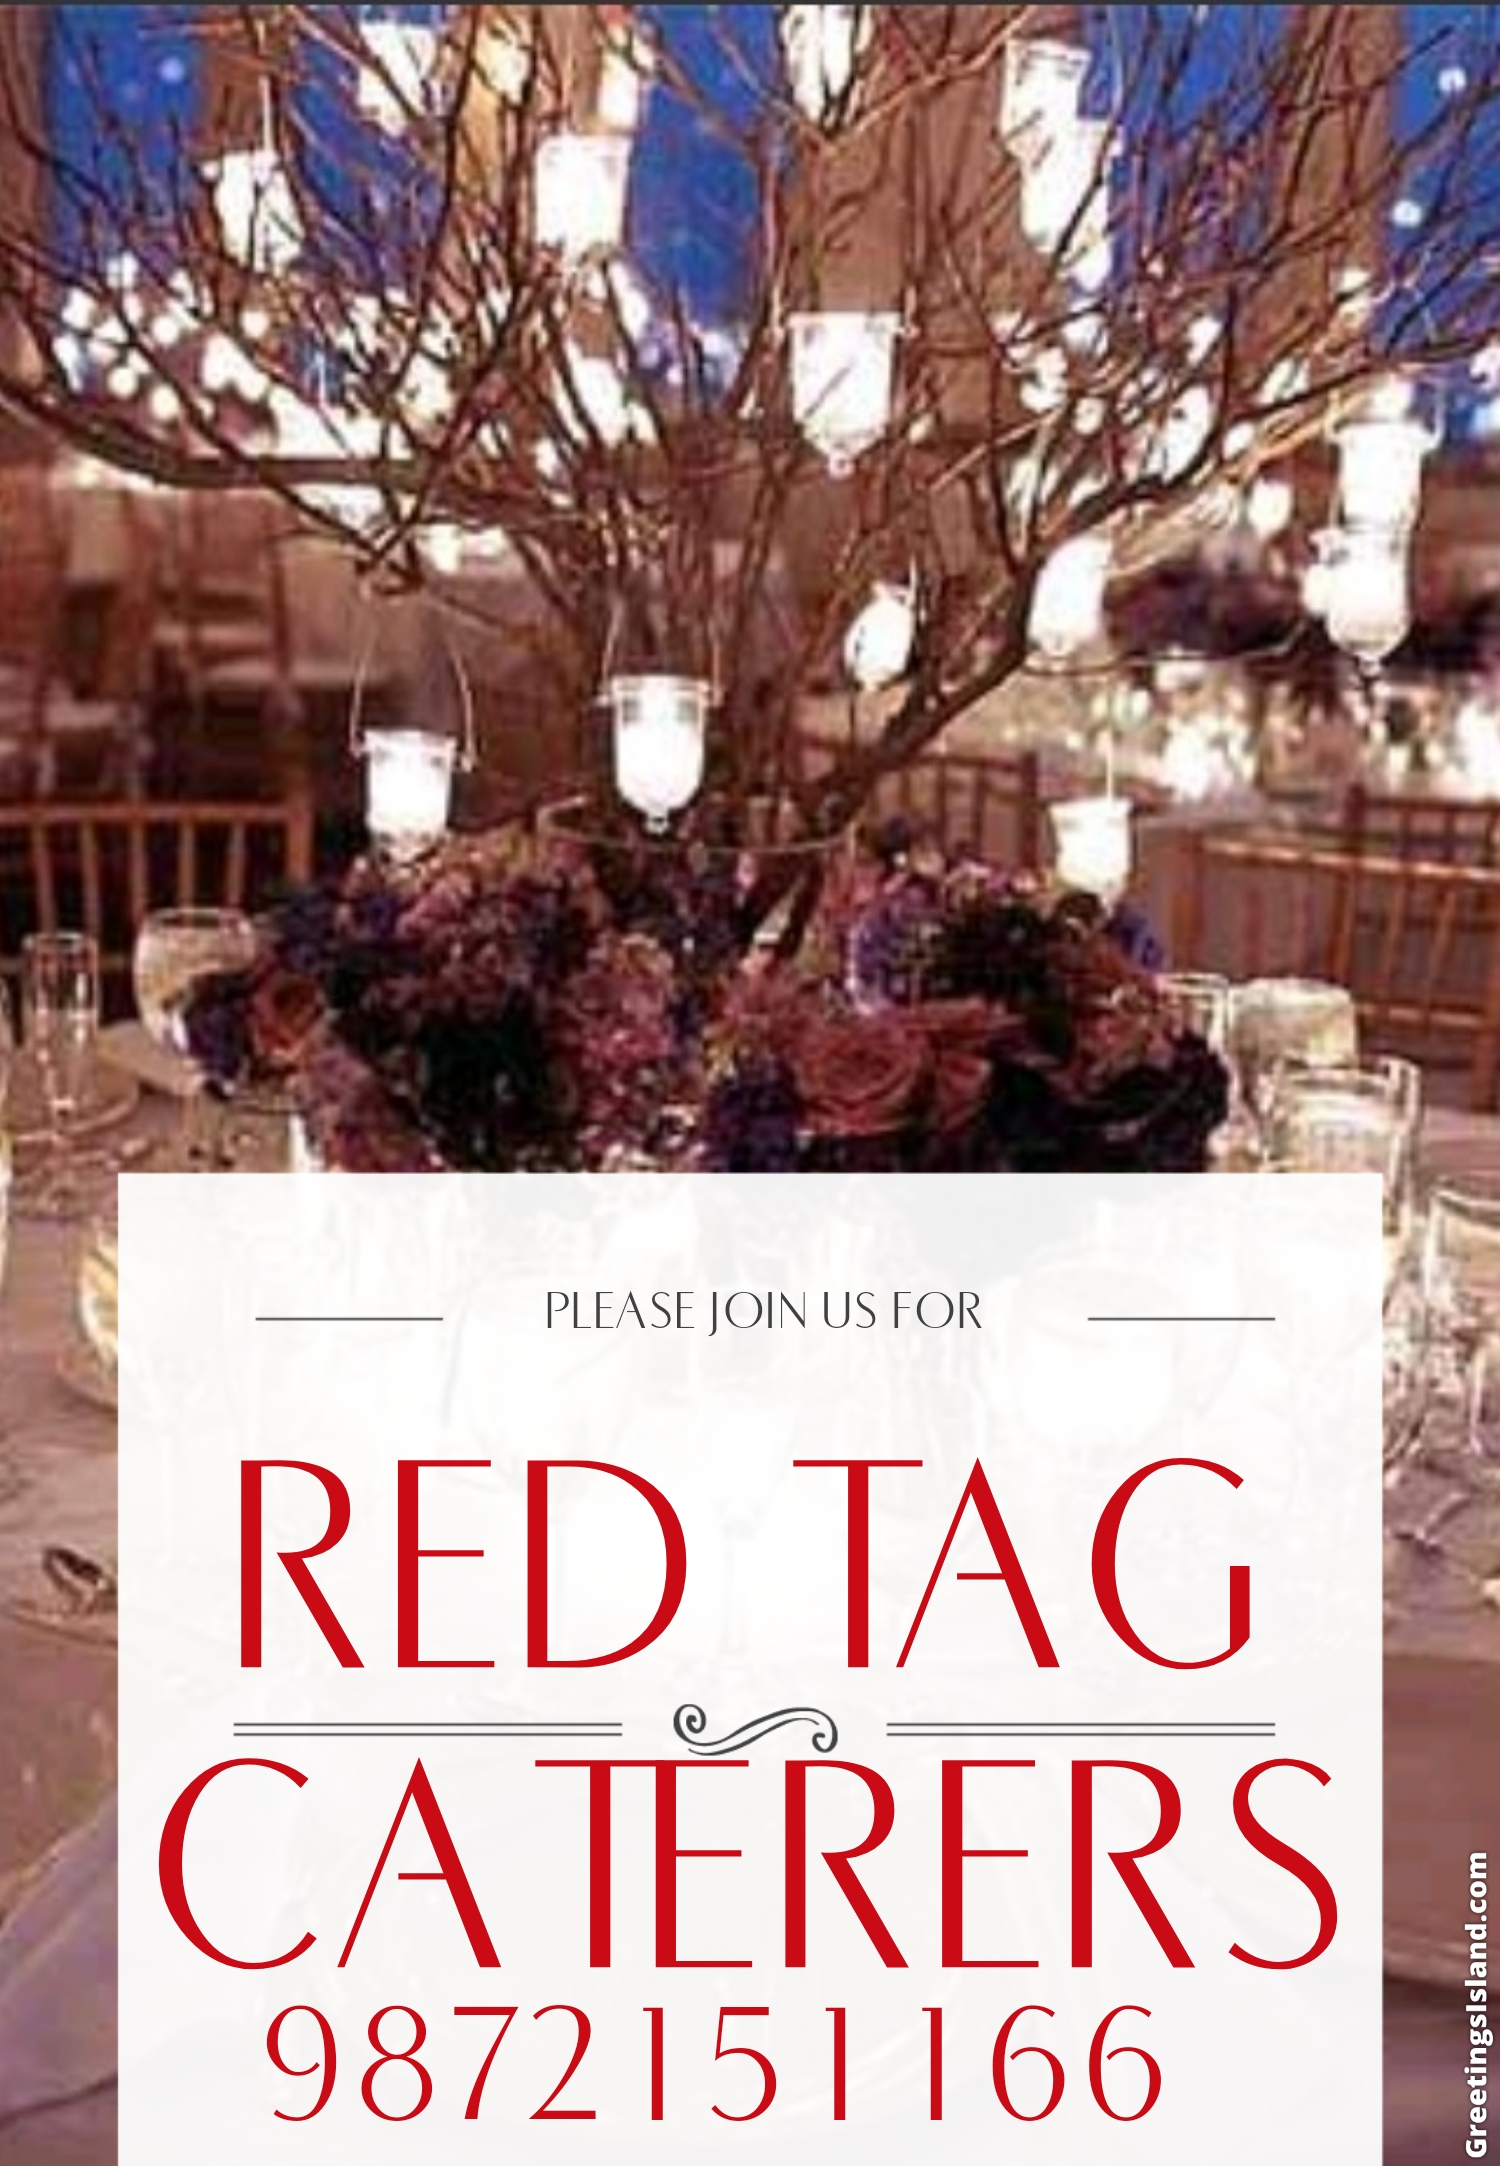 Red Tag Caterers, Catering company in Chandigarh, caterer in Chandigarh, best caterers in Chandigarh, outdoor catering service in Chandigarh